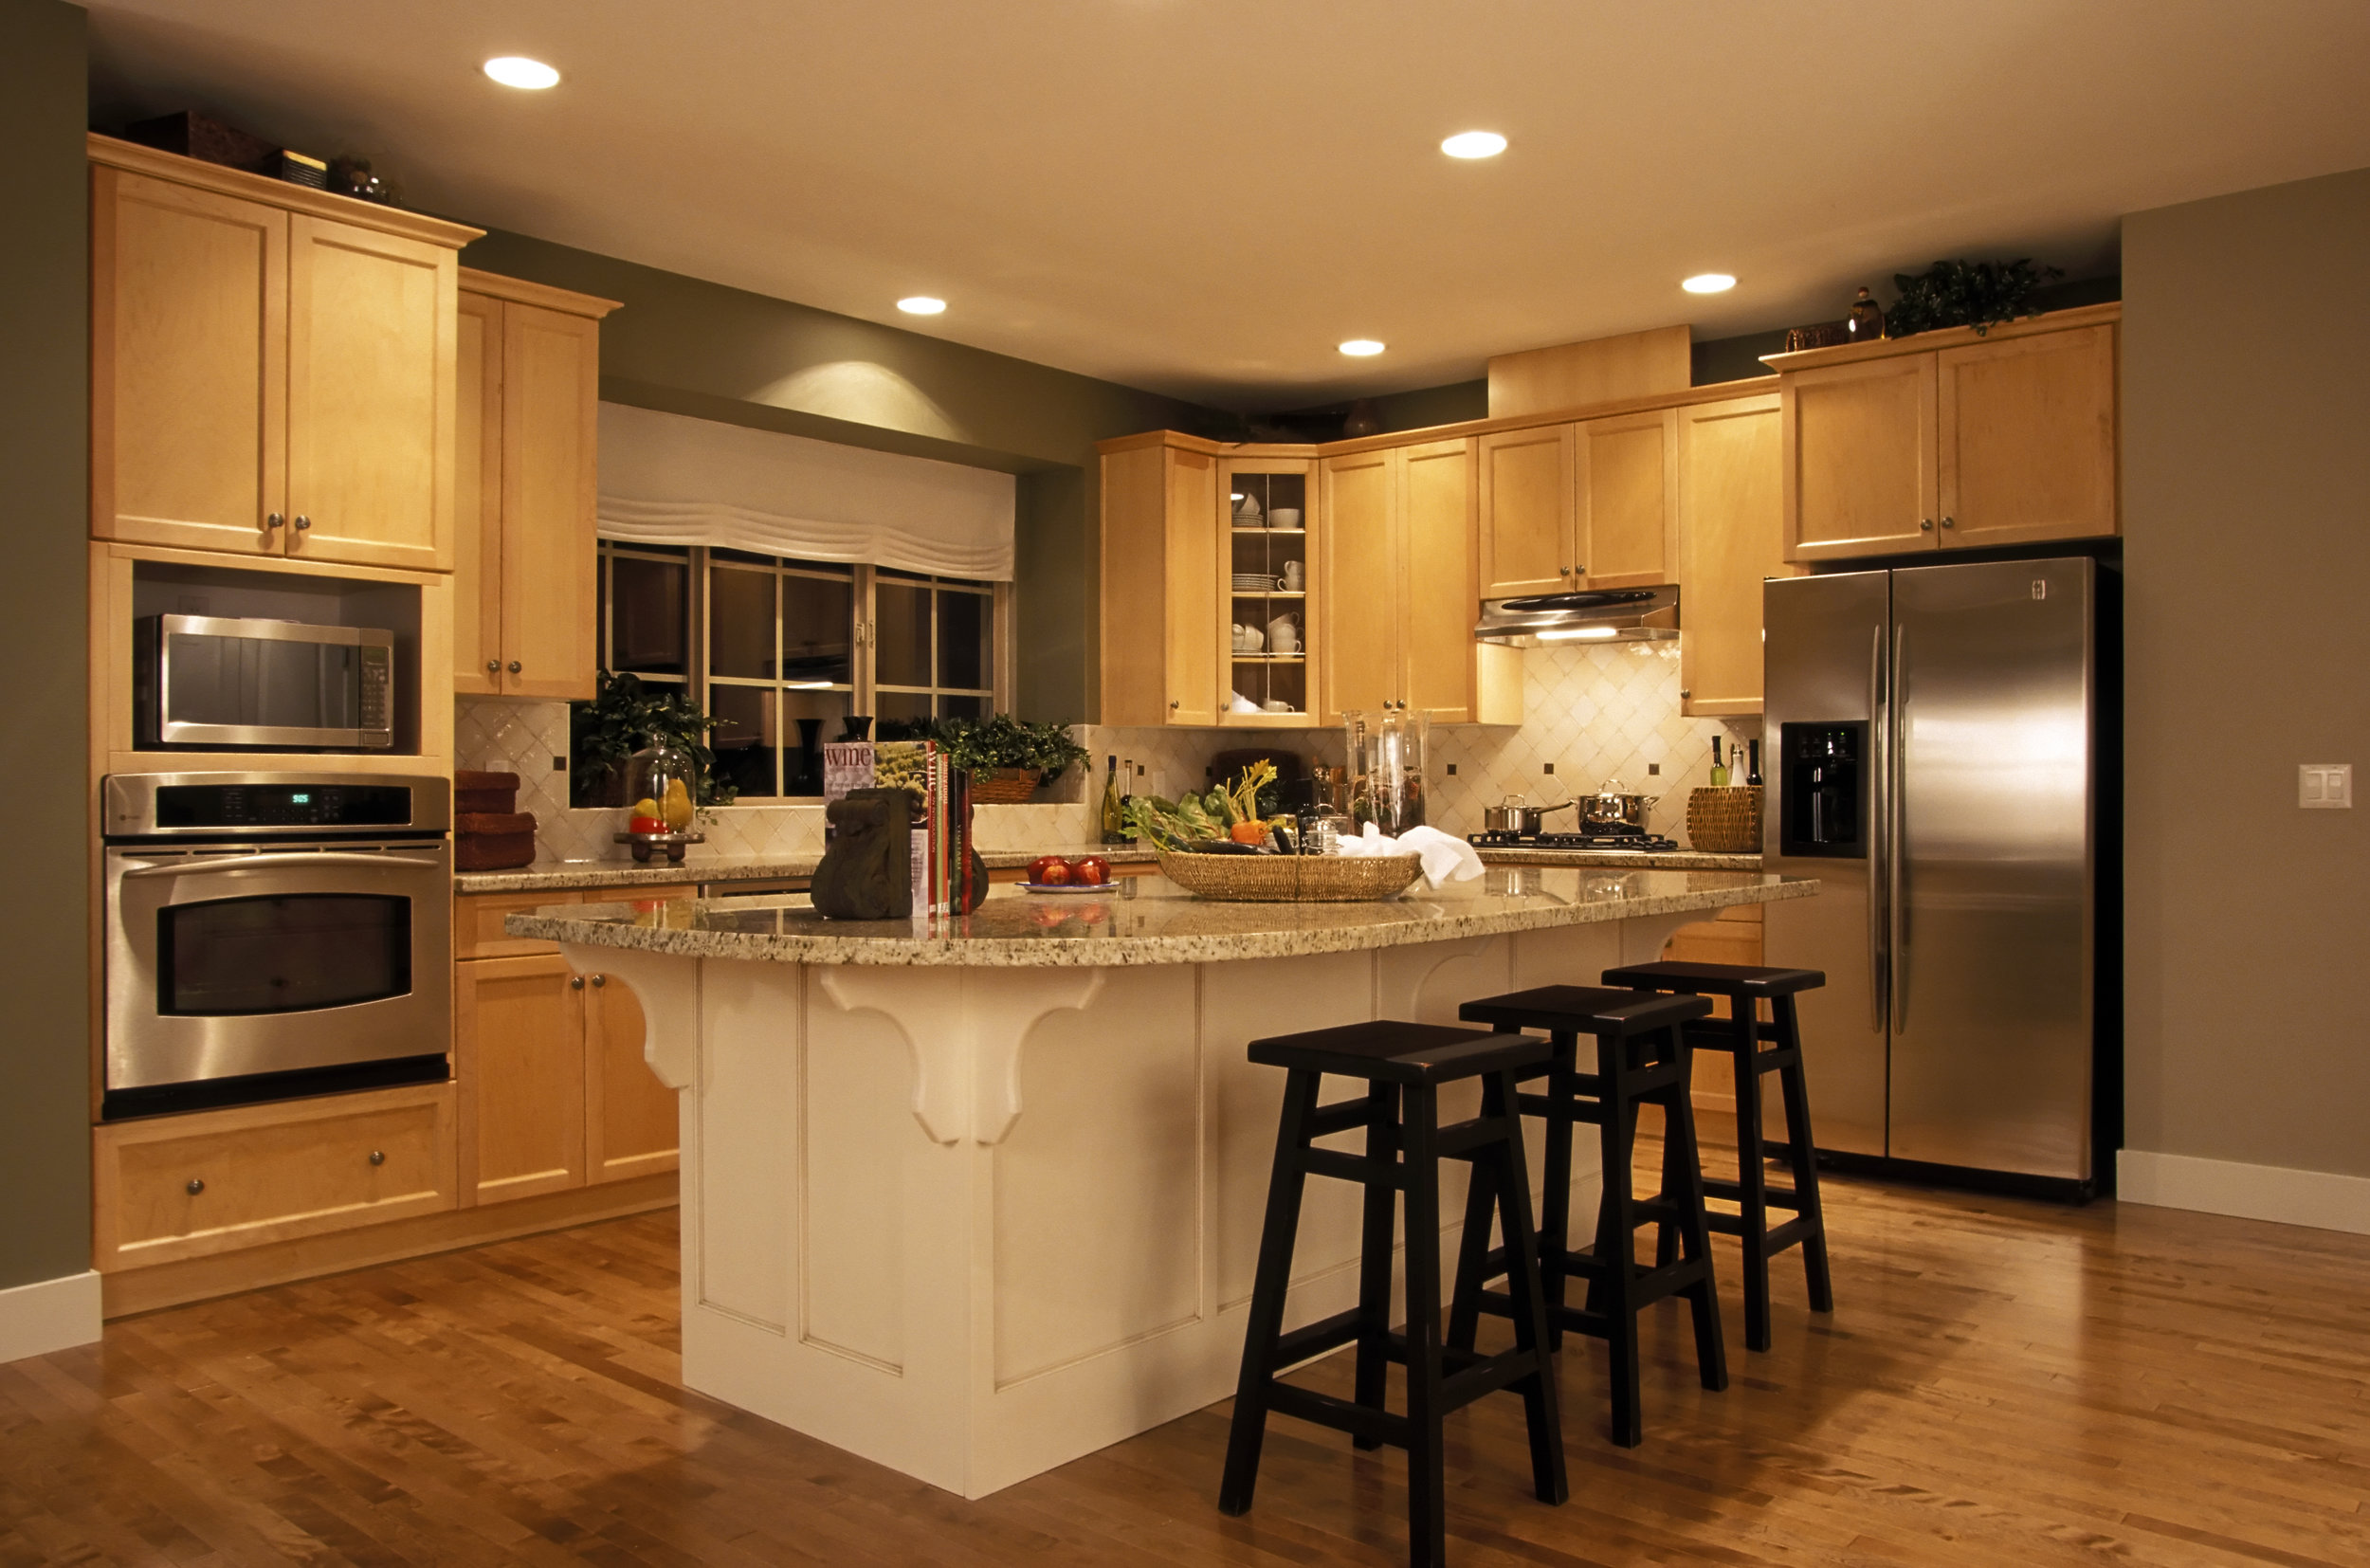 bigstockphoto_Kitchen_In_House_1800000.jpg